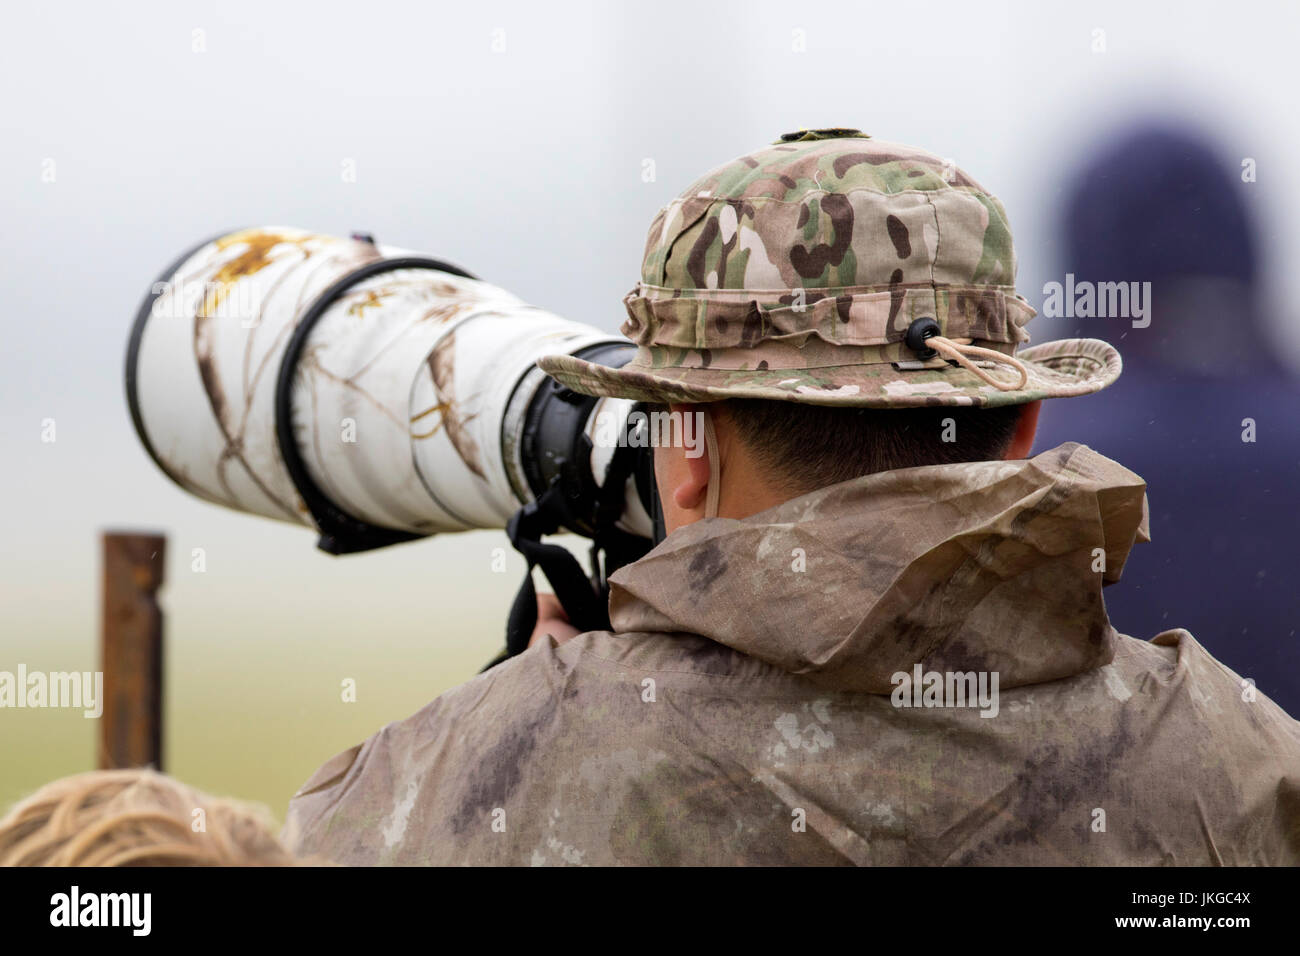 Professional photographer wearing camouflage shooting with a canon camera and EF500mm f4 super telephoto lens - Stock Image